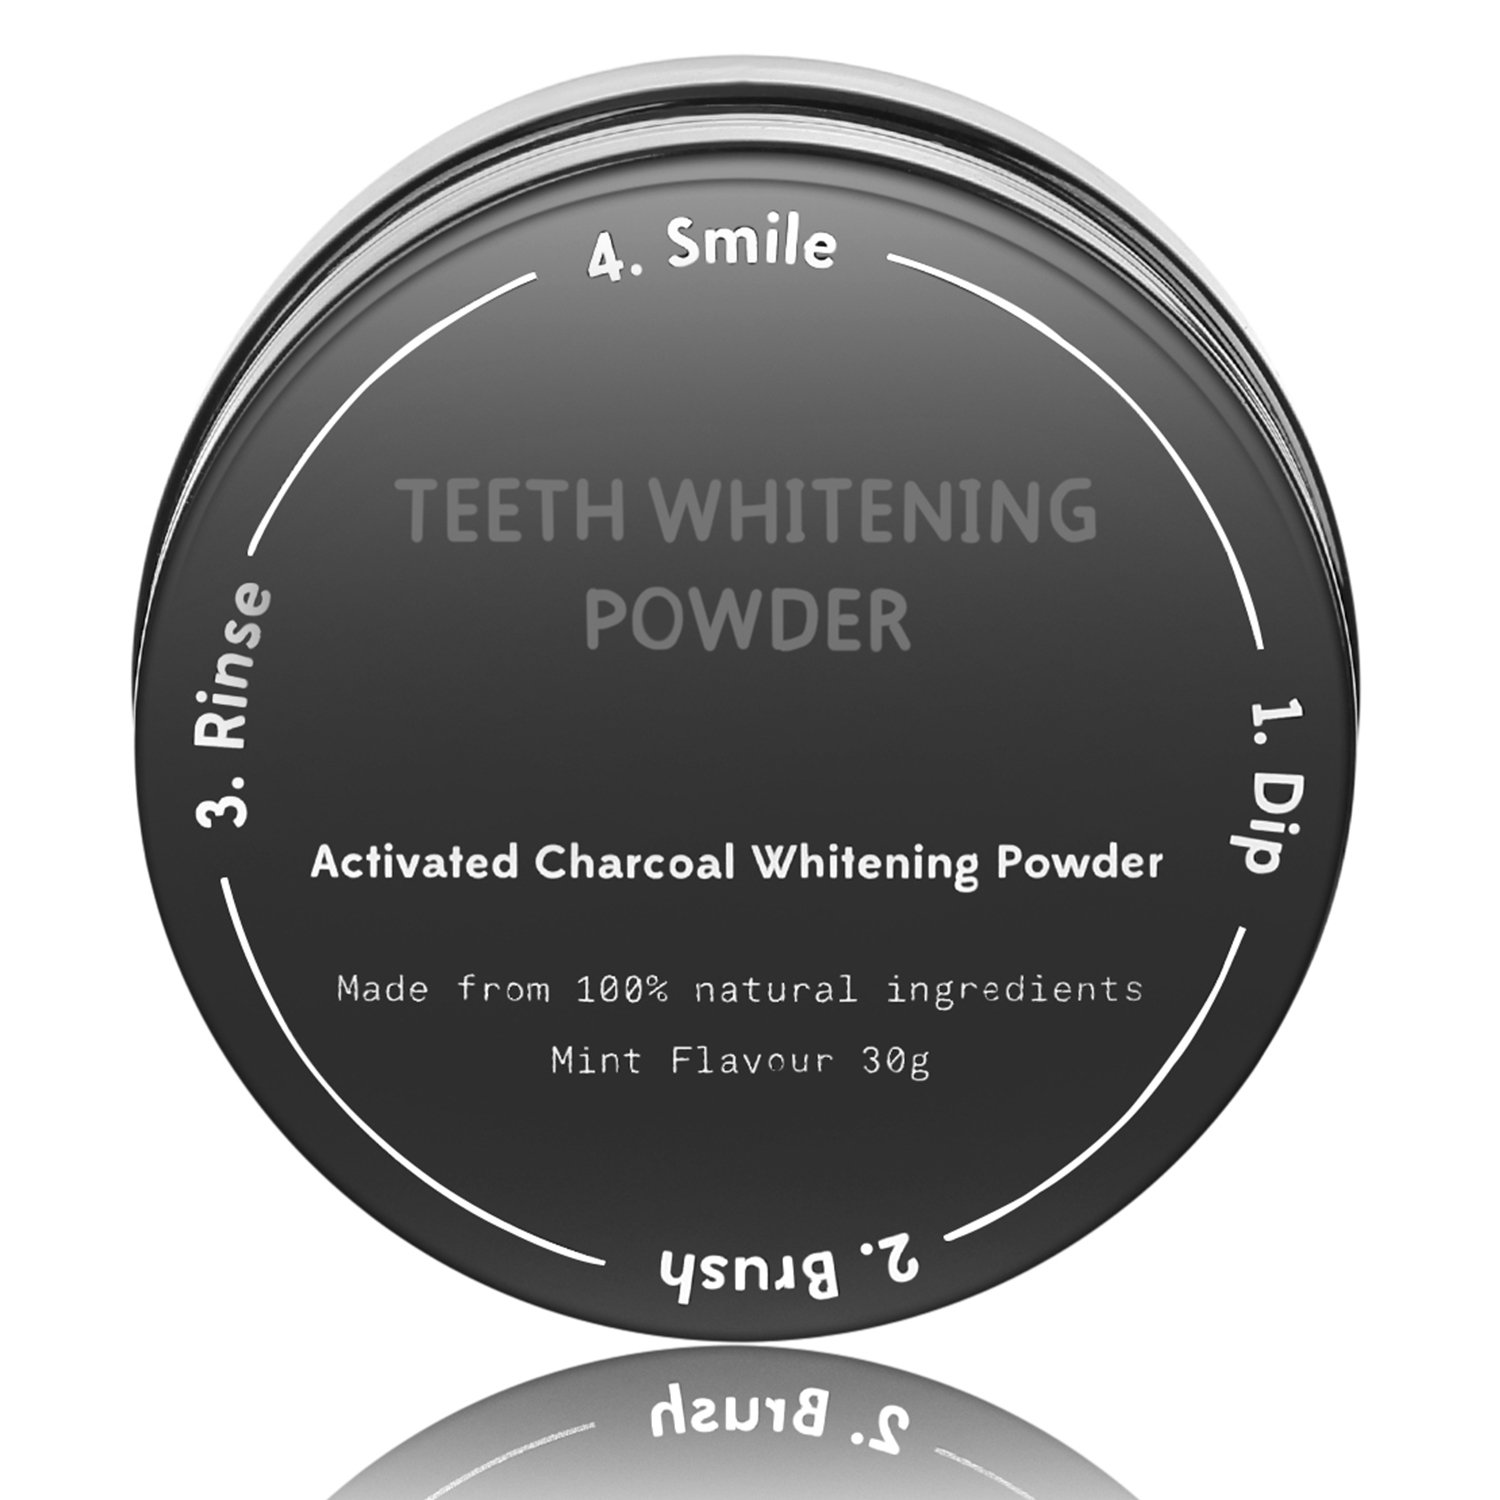 Wloomm Natural Teeth Whitening Powder with Activated Charcoal Non Abrasive&Proven Safe for Enamel Teeth Whitening Powder for Teeth and Gums 30g/1.05oz Upgraded Organic Charcoal Teeth Whitening Powder